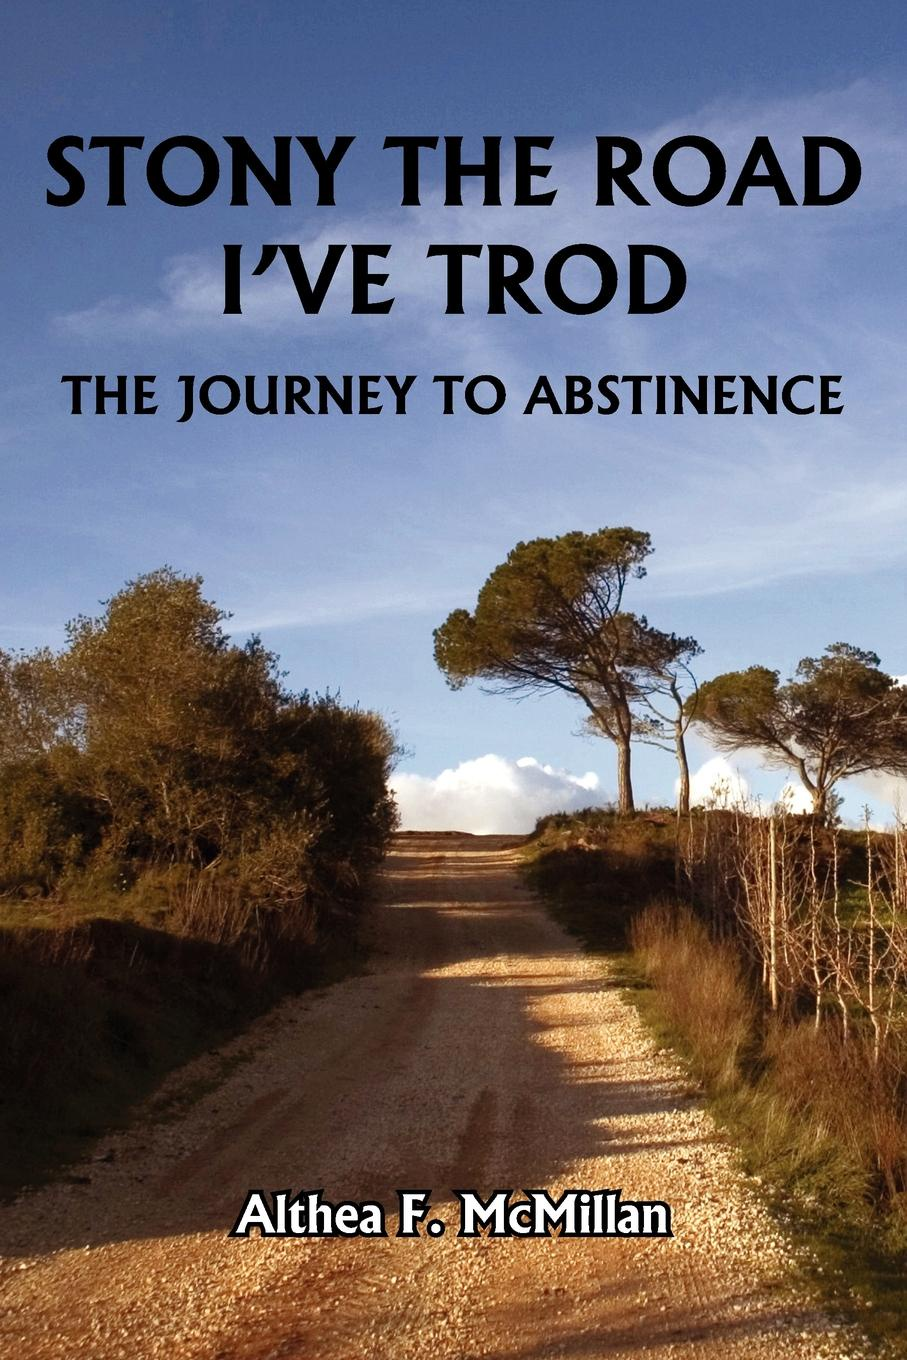 Фото - Althea F. McMillan STONY THE ROAD I'VE TROD. THE JOURNEY TO ABSTINENCE geraldina edward psychosocial correlates of abstinence from sex